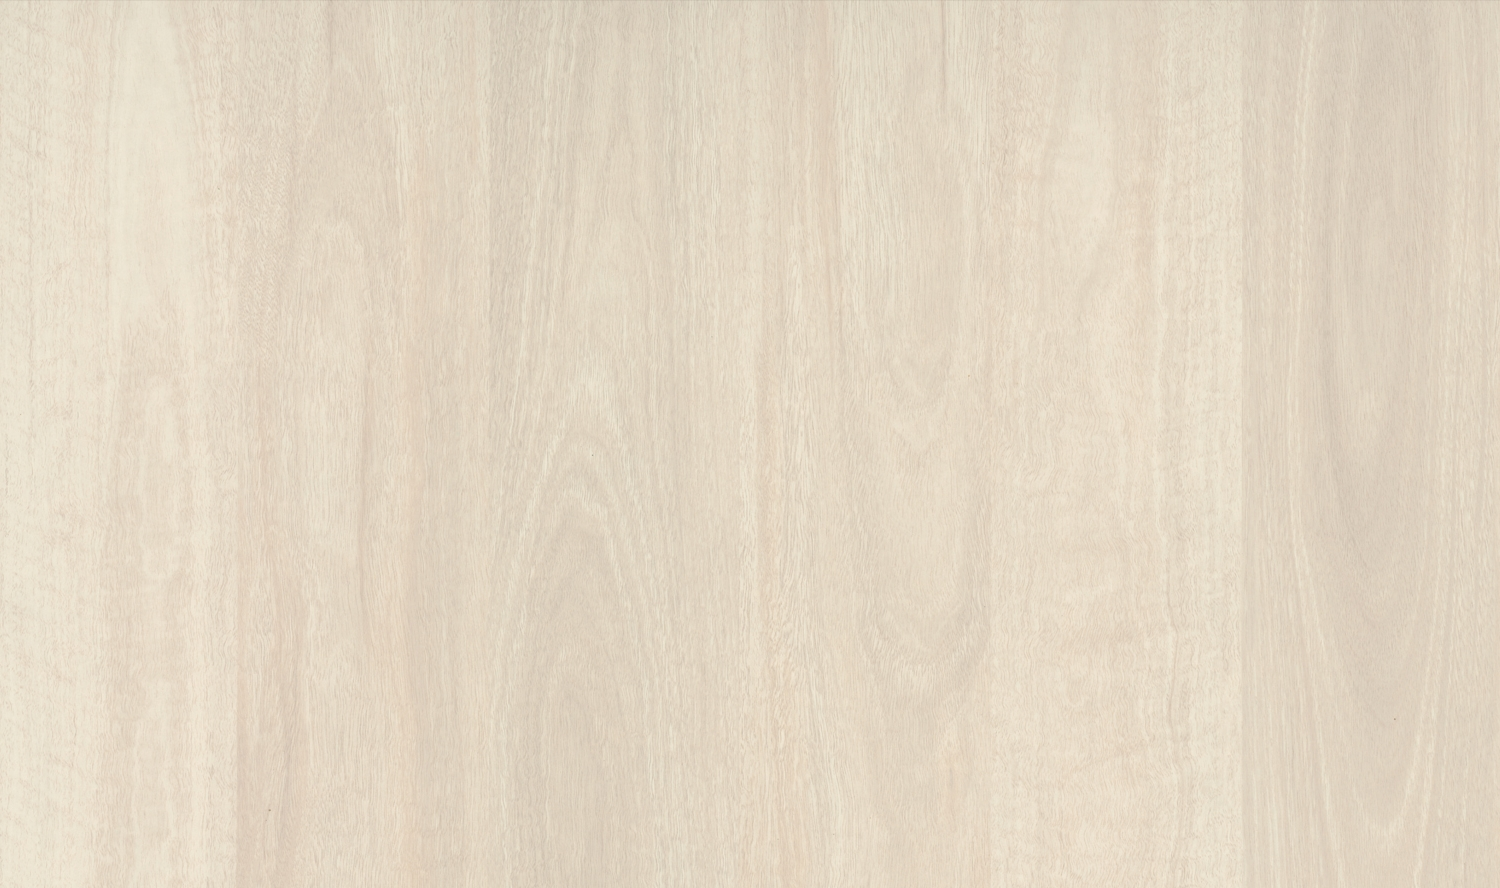 1MM international, North Supreme, South Supreme Laminates for Kitchen-Sundek International